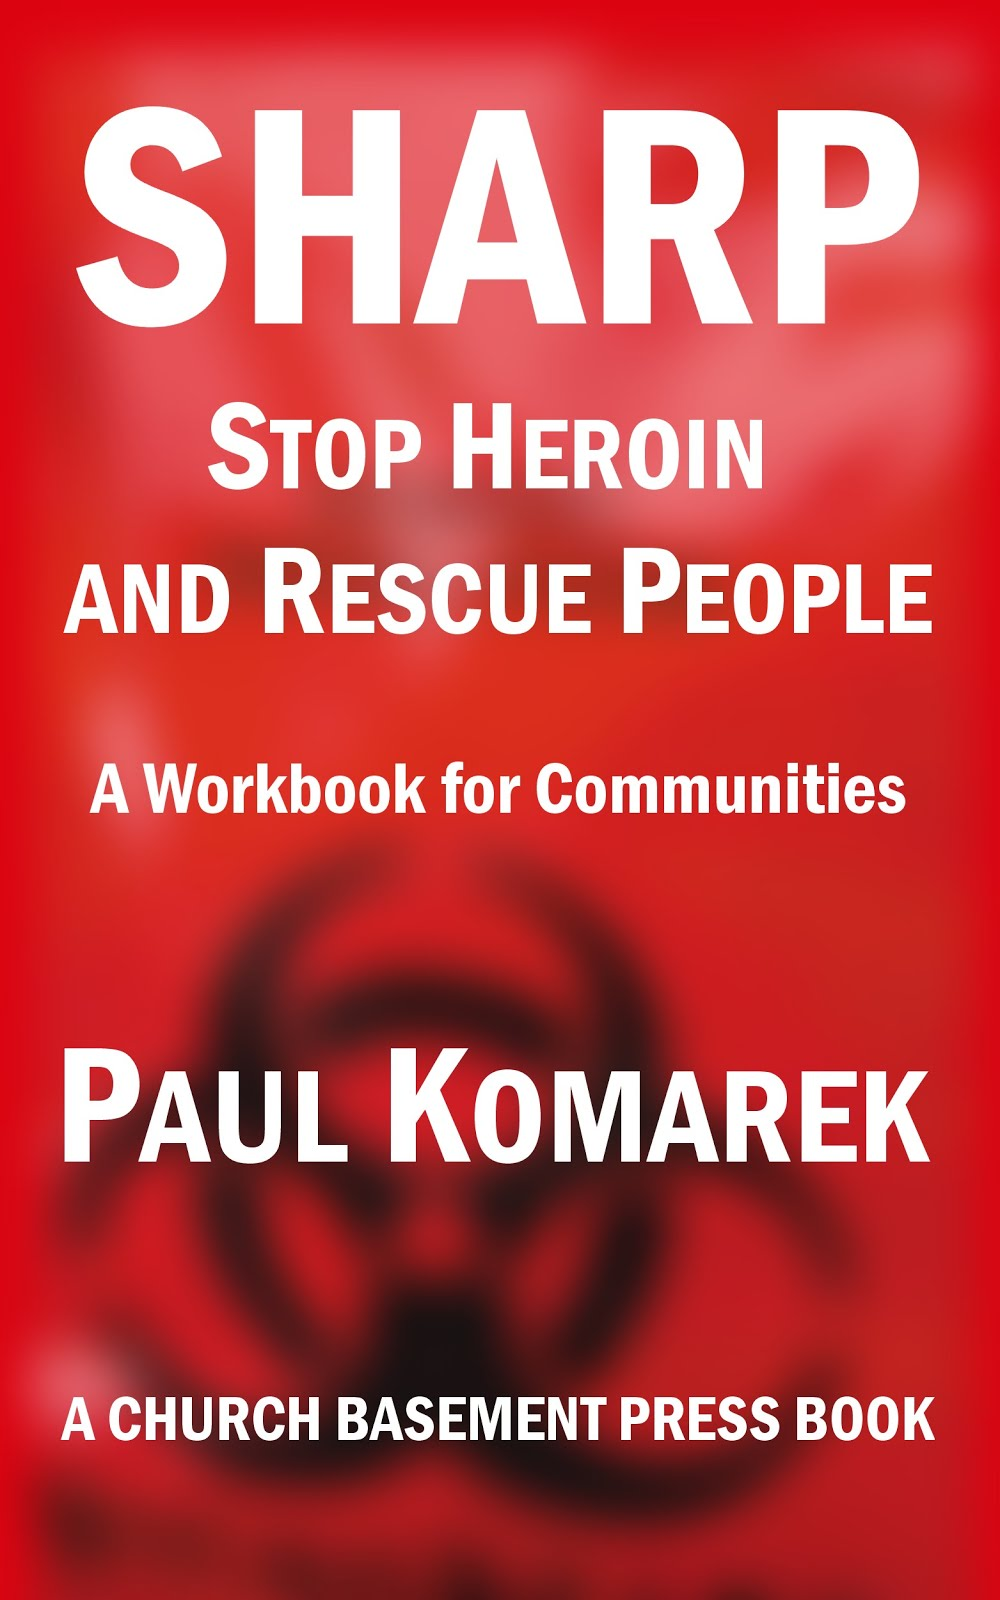 Systematic Rescue for Heroin